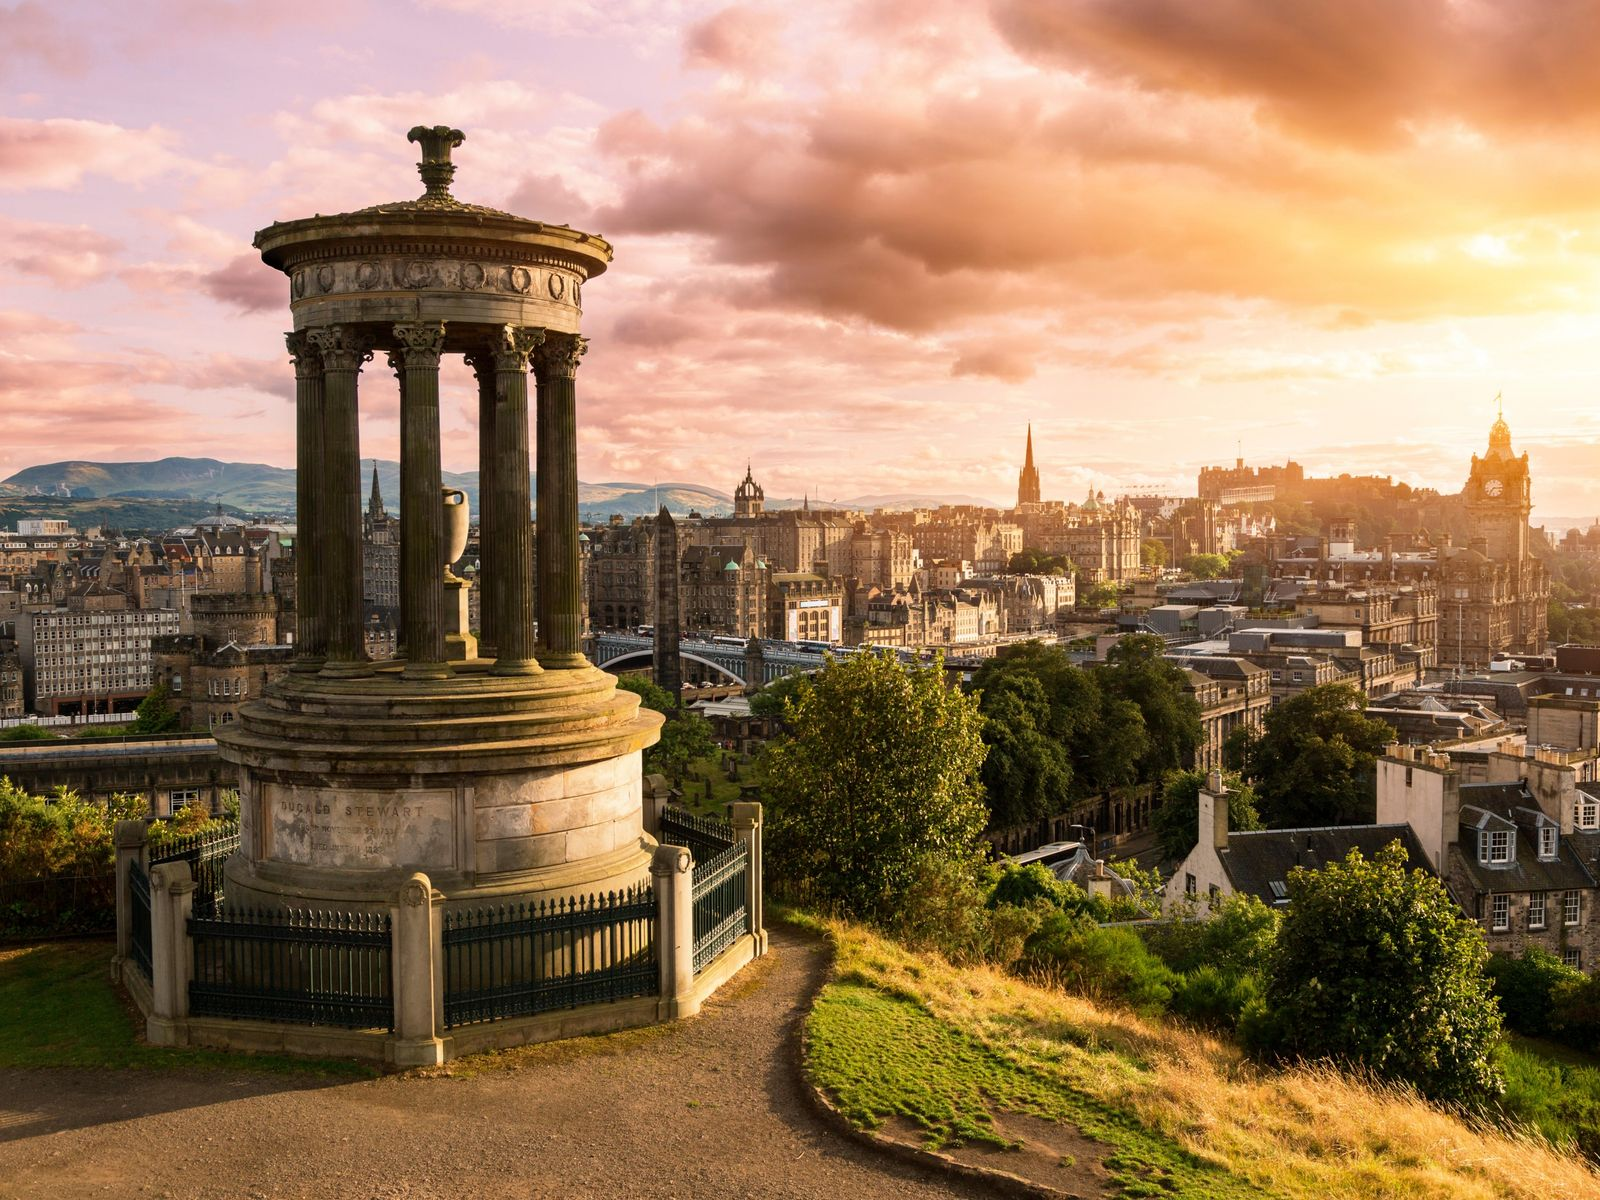 View of Edinburgh city from the Dugald Stewart Monument on Calton Hill.